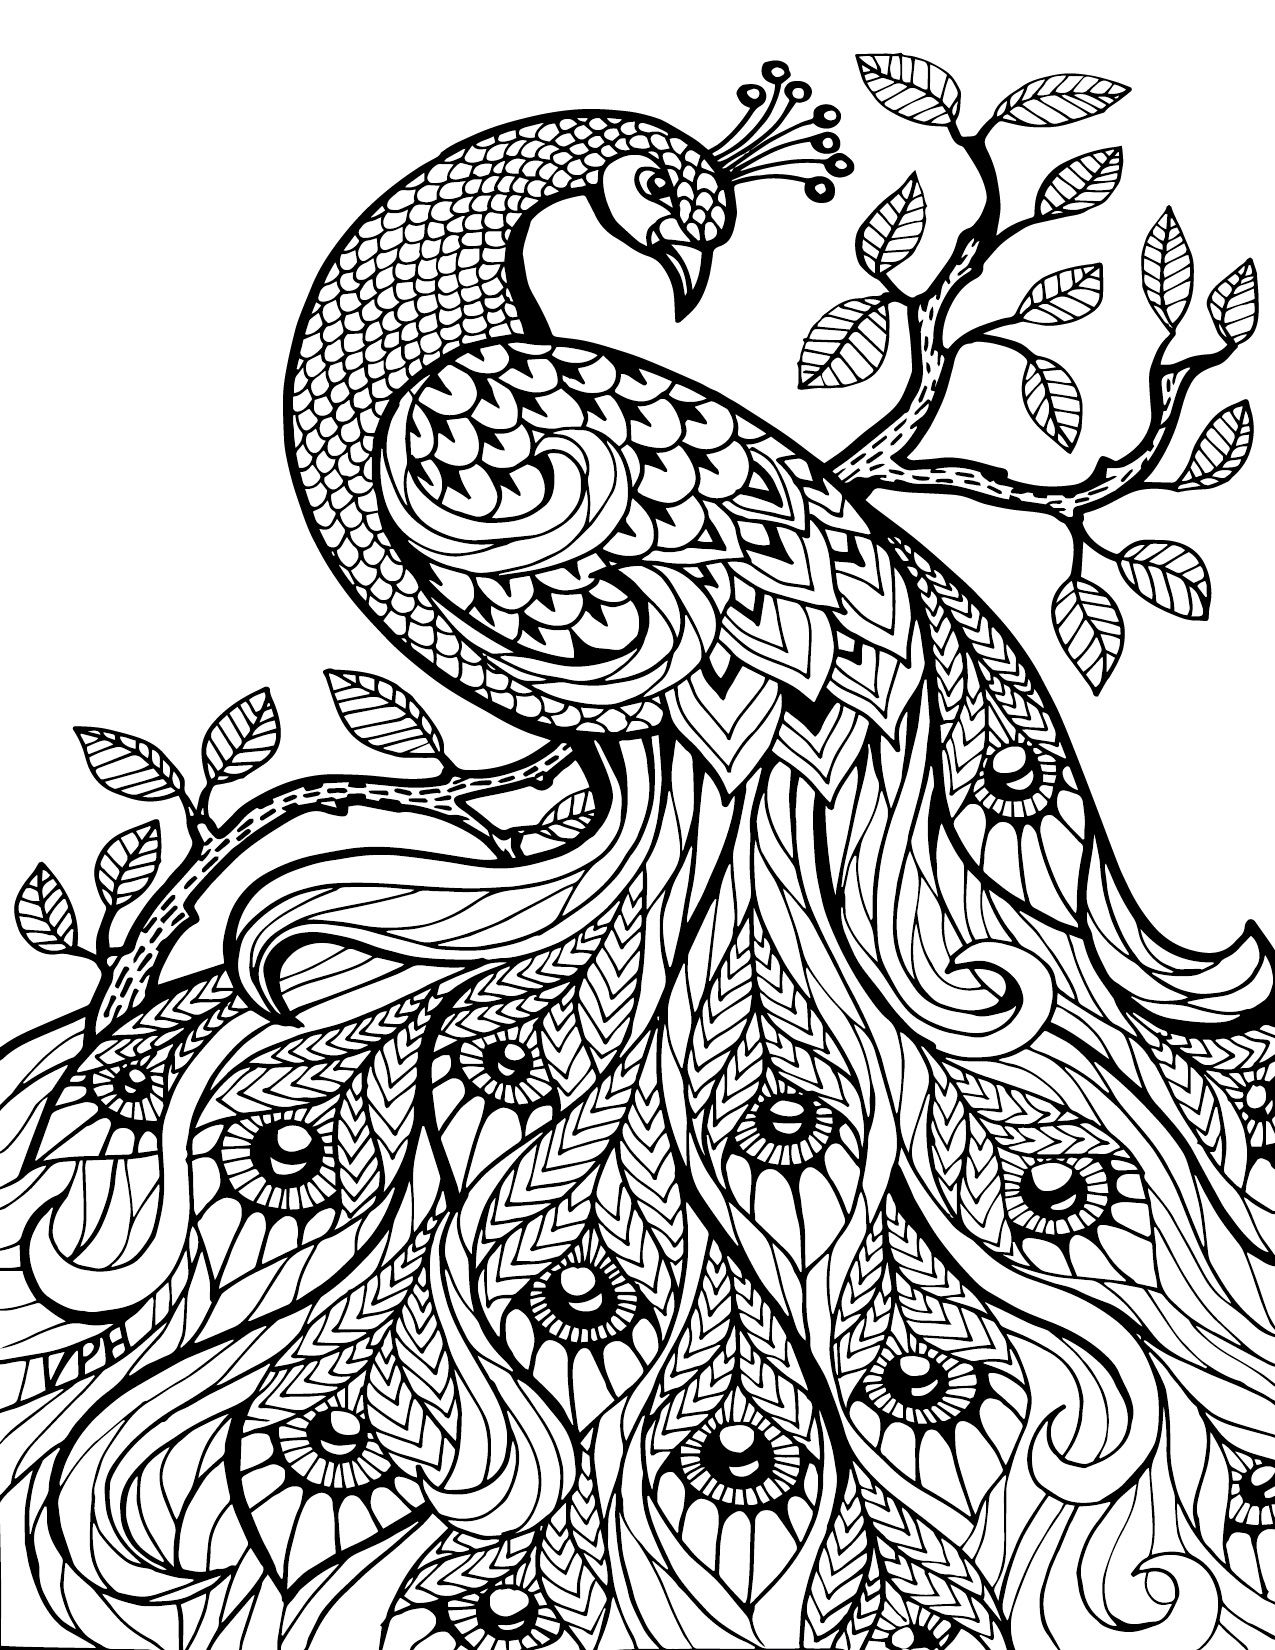 Free Download Adult Coloring Pages http://procoloring.com/adult ...